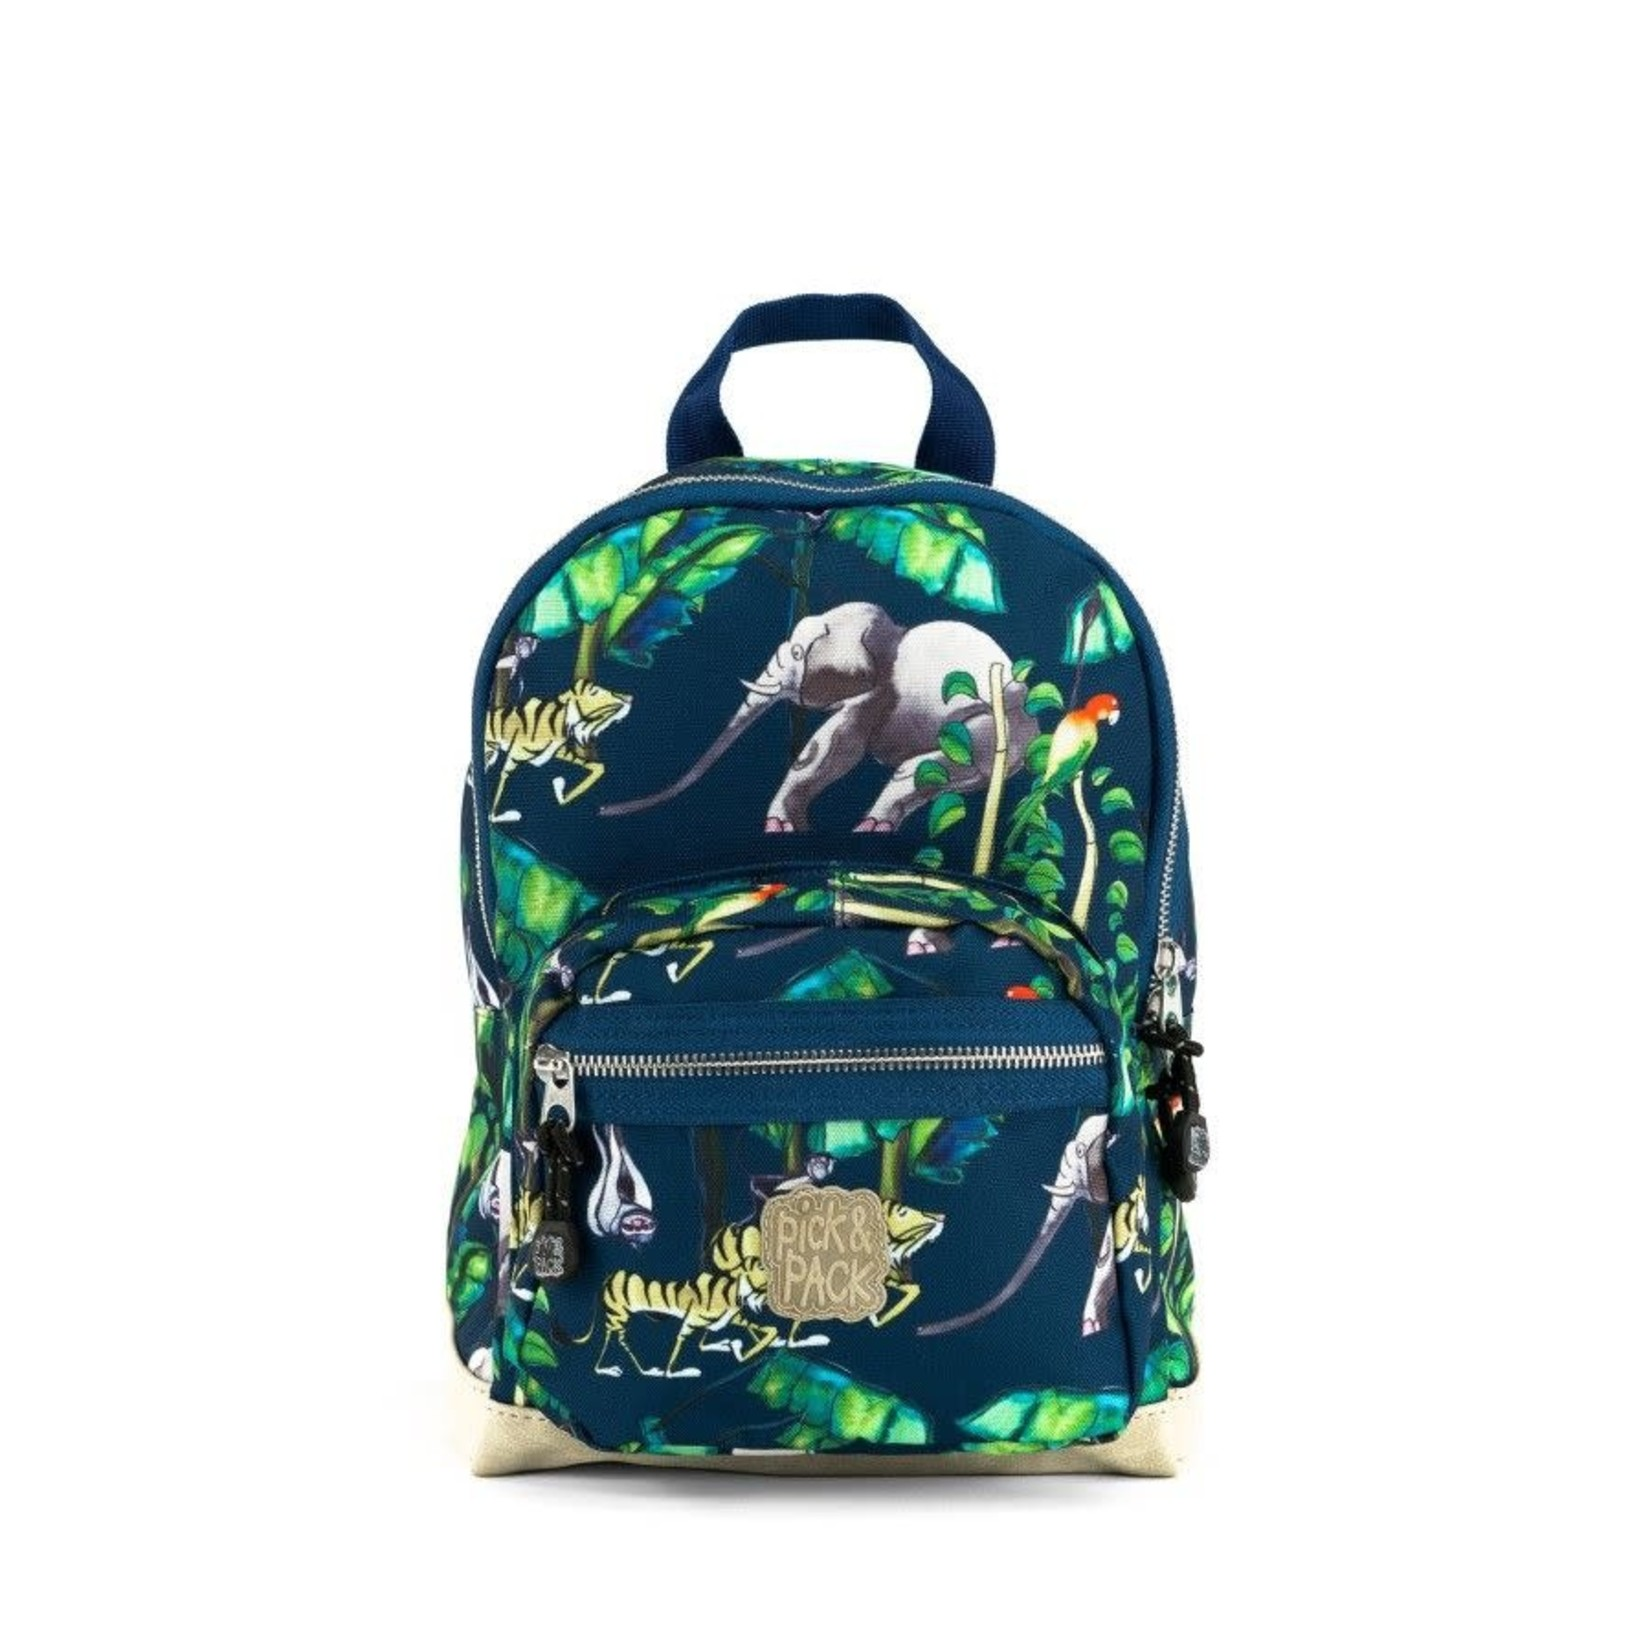 pick & pack PICK & PACK happy jungle NAVY